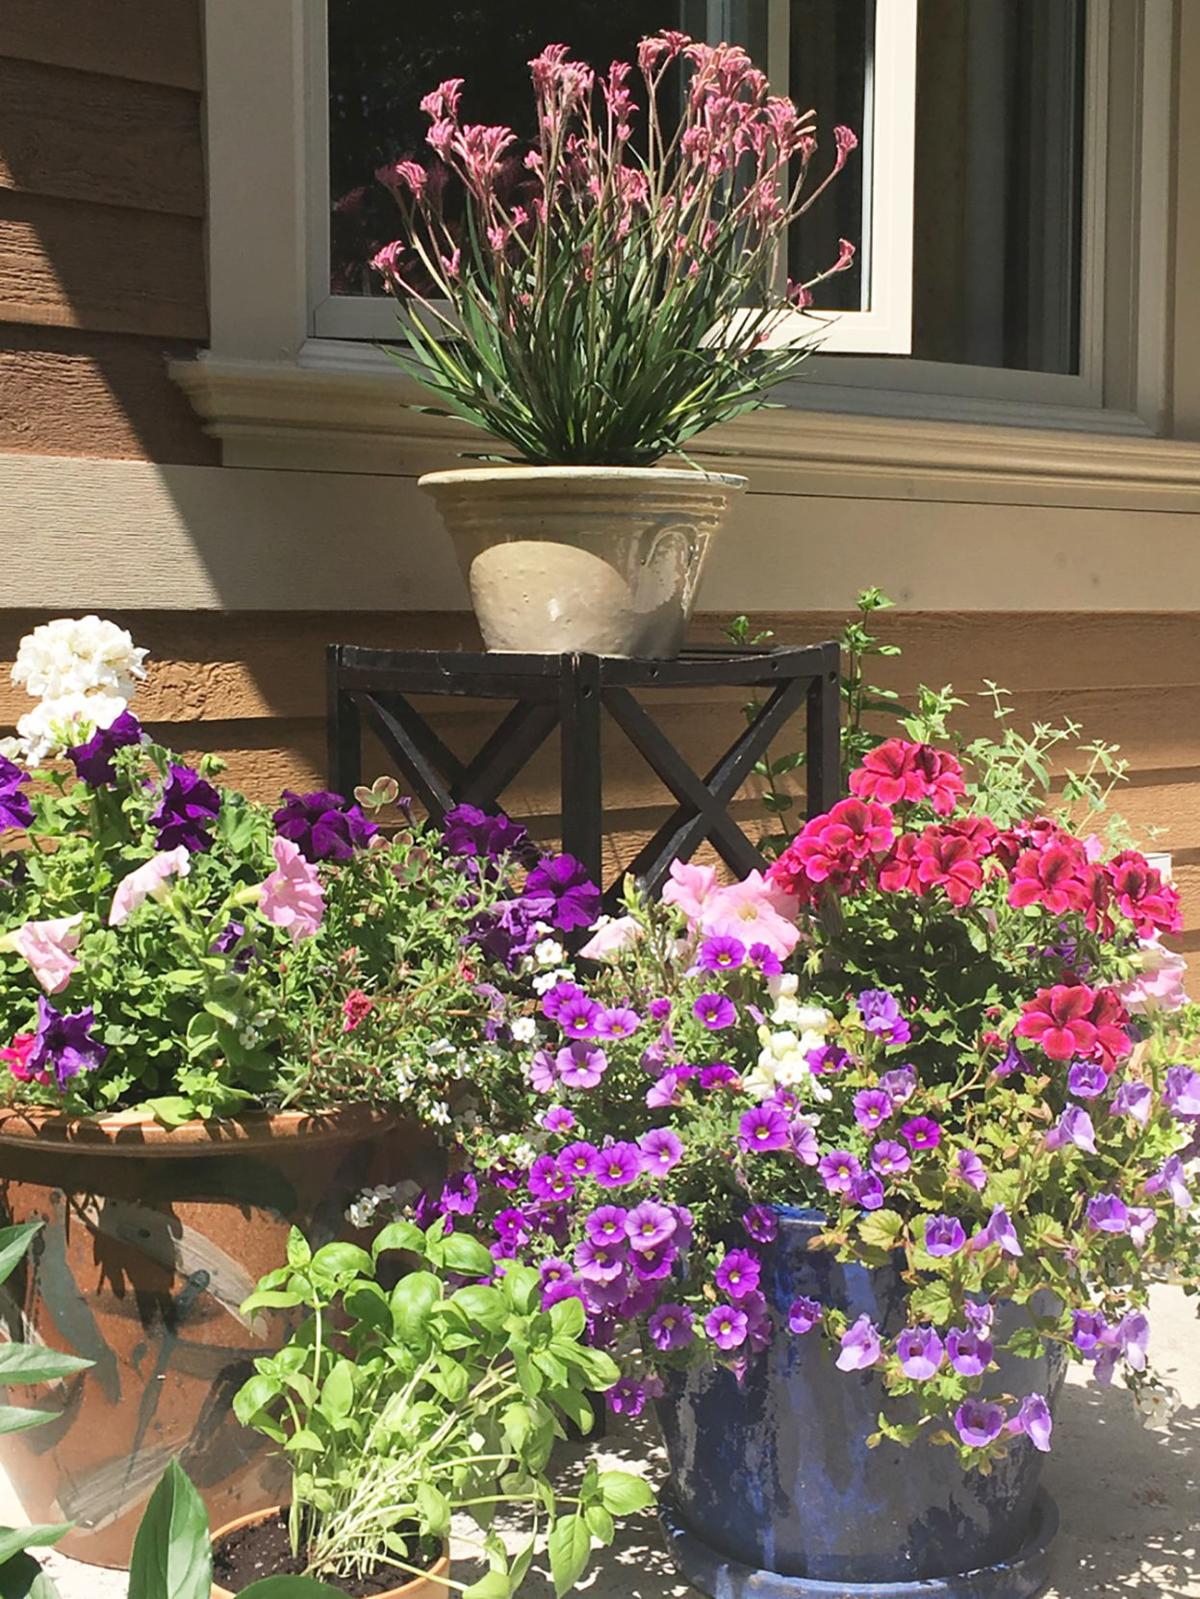 Elaine Sanders: Three creative container ideas for growing on balconies